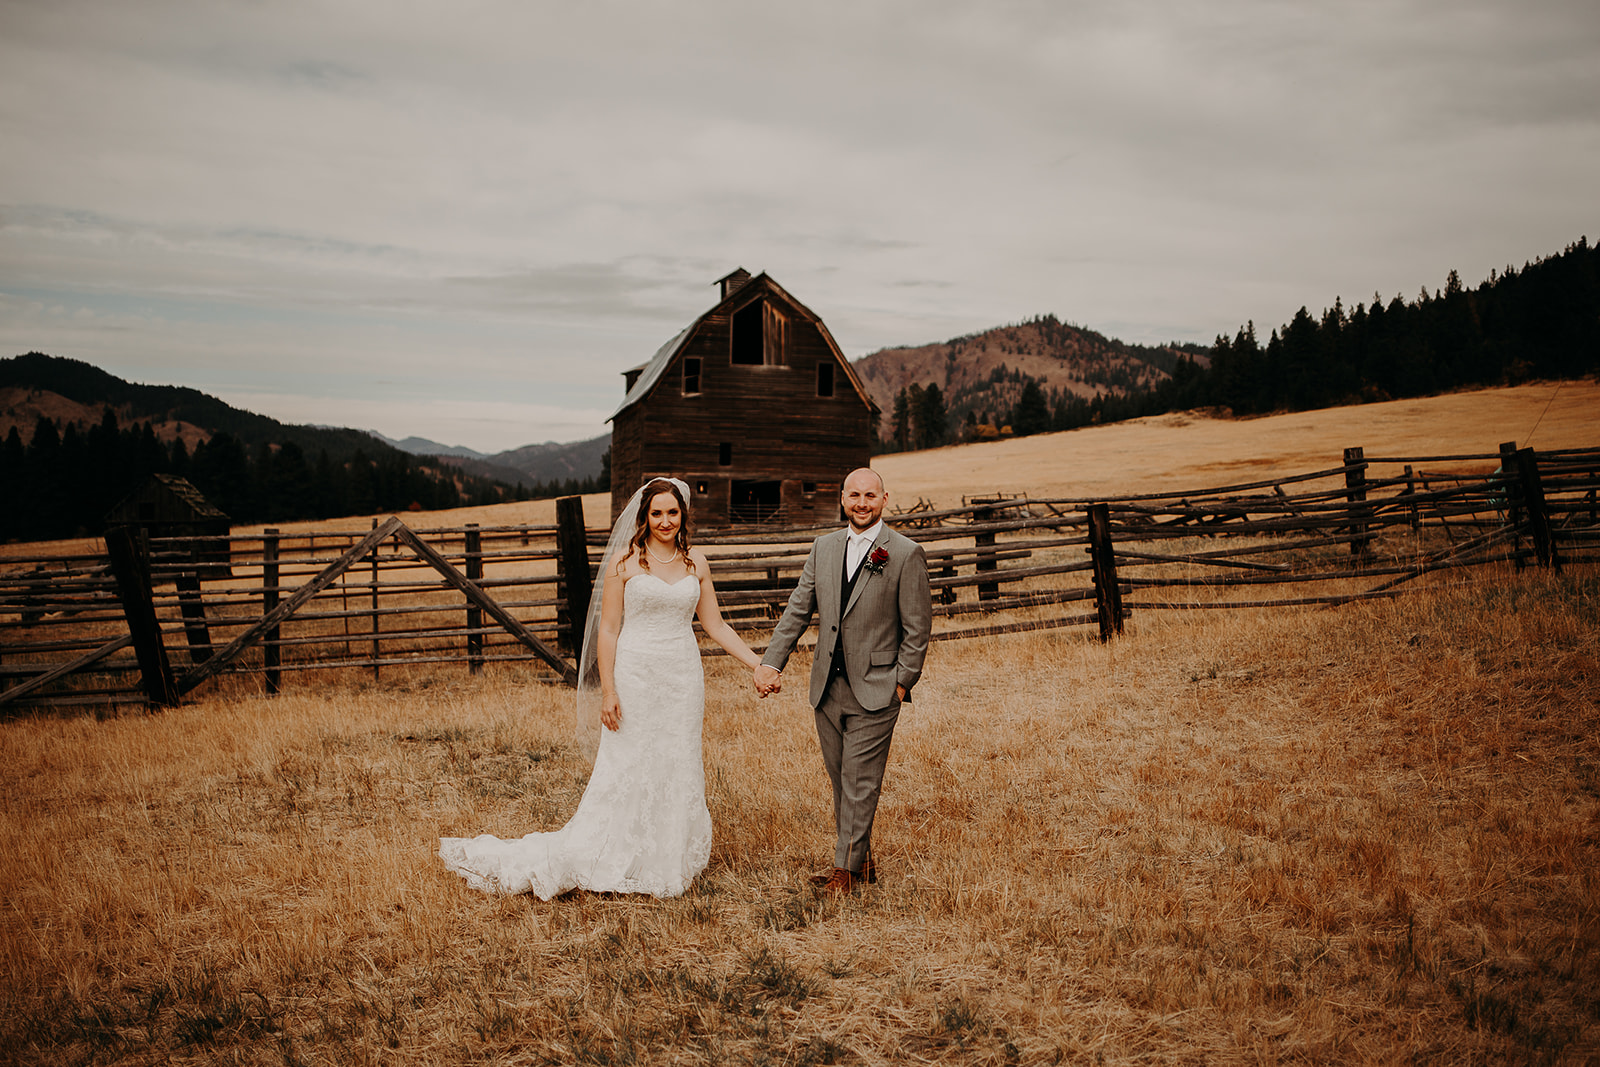 cattle-barn-wedding-cle-elum-washington-megan-gallagher-photography-winston-salem-photographer (12).jpg